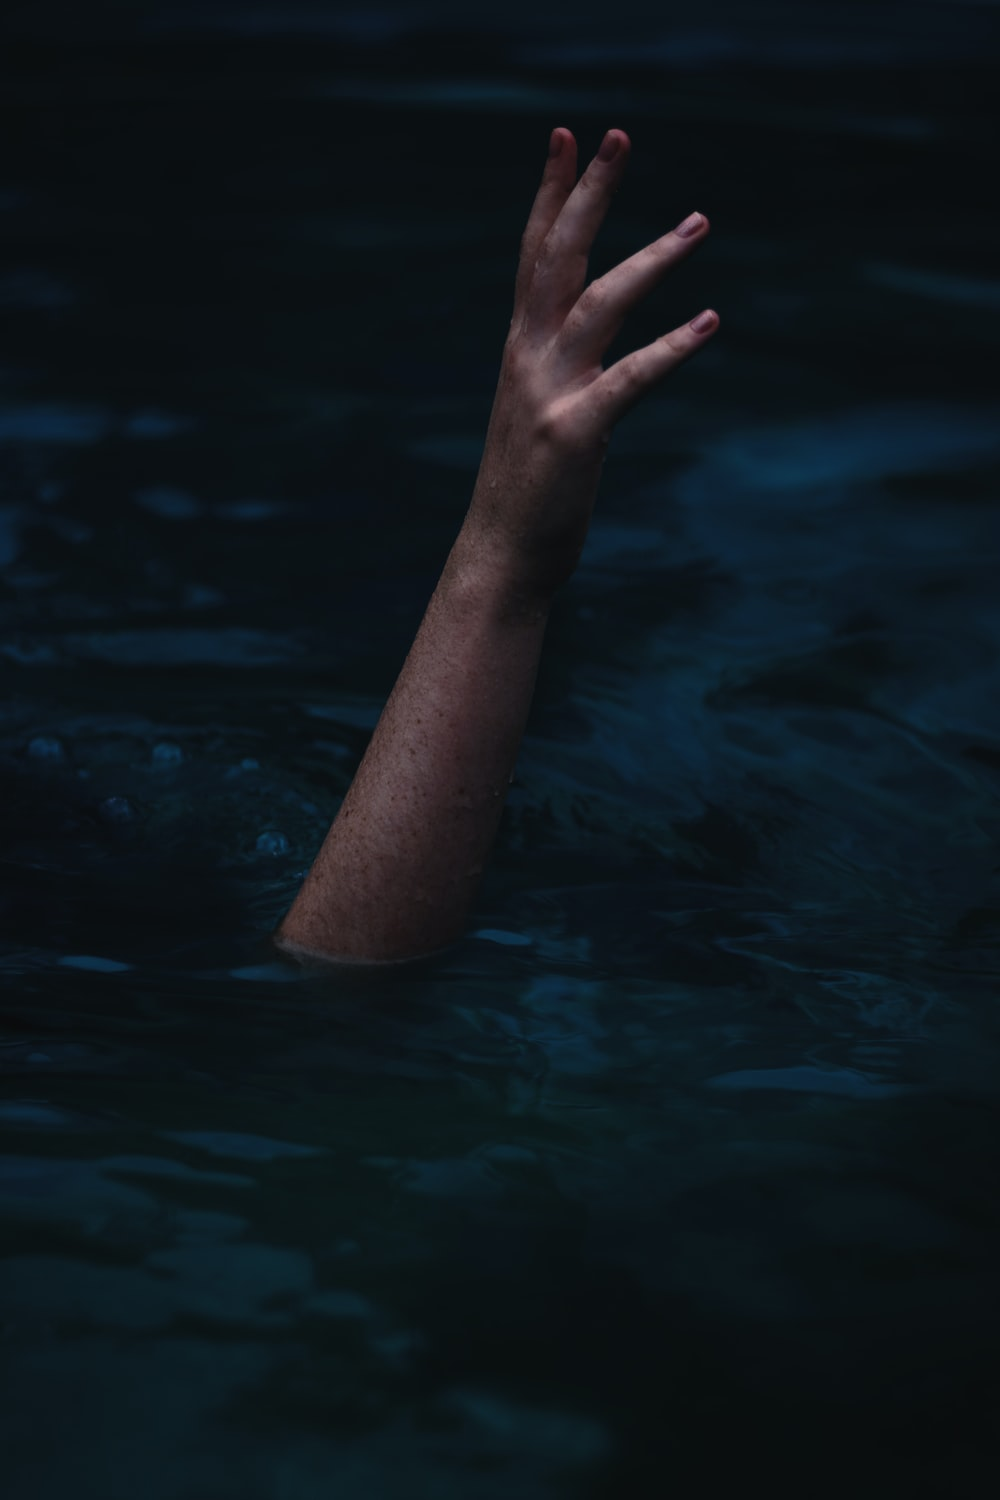 person showing right hand from body of water